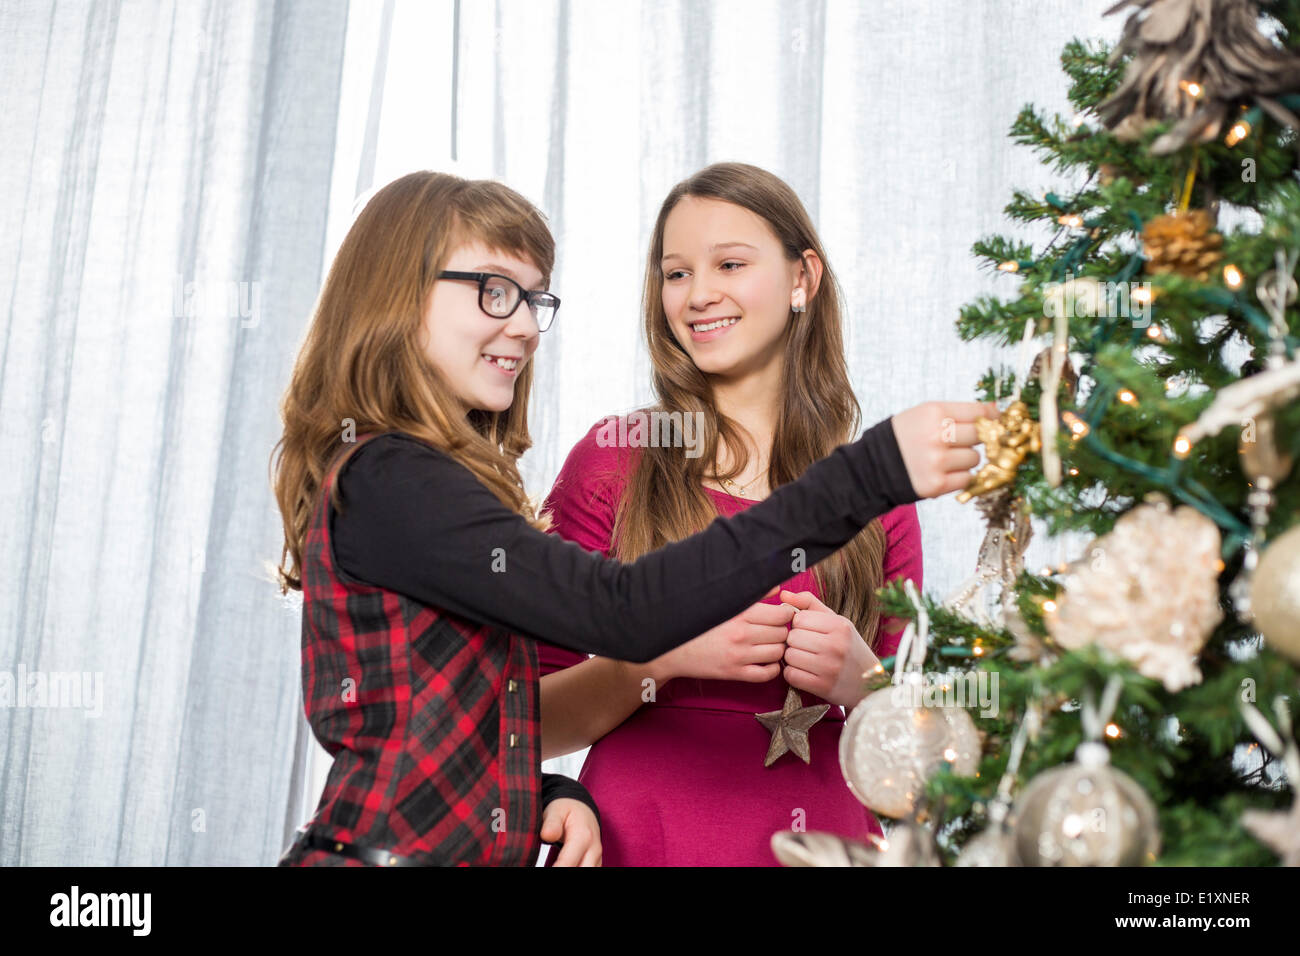 Sisters decorating on Christmas tree at home - Stock Image